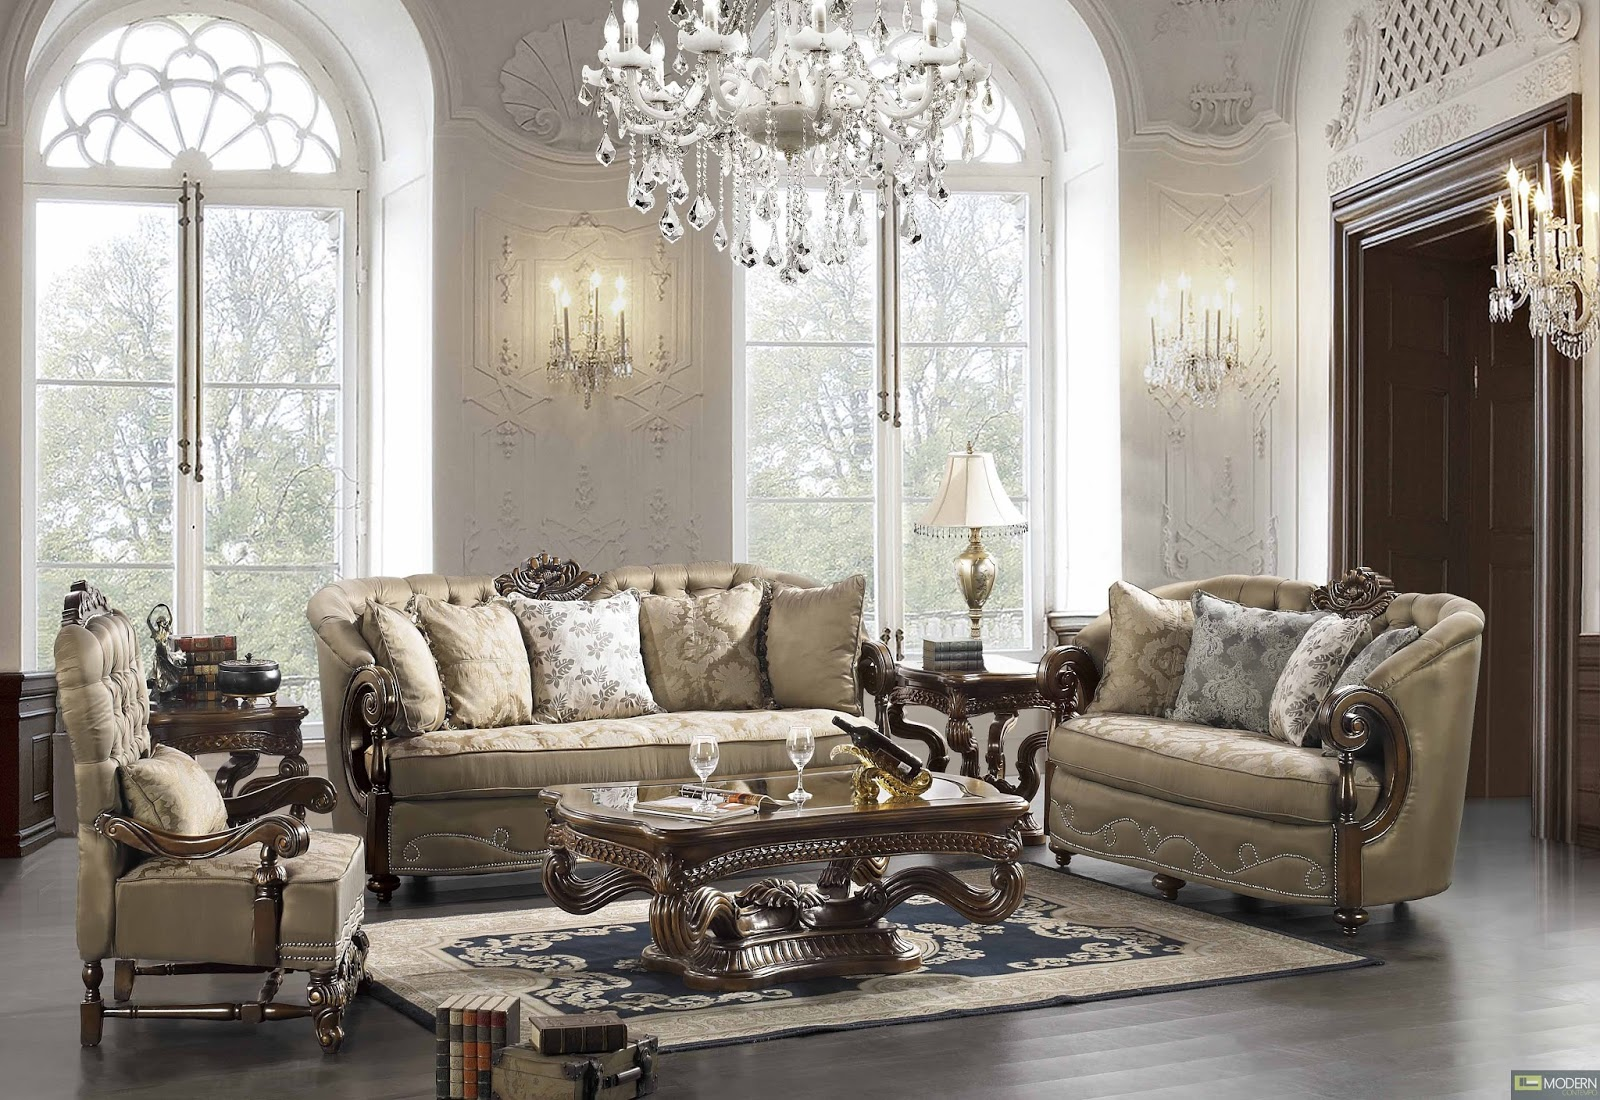 Best furniture ideas for home traditional classic Elegance decor